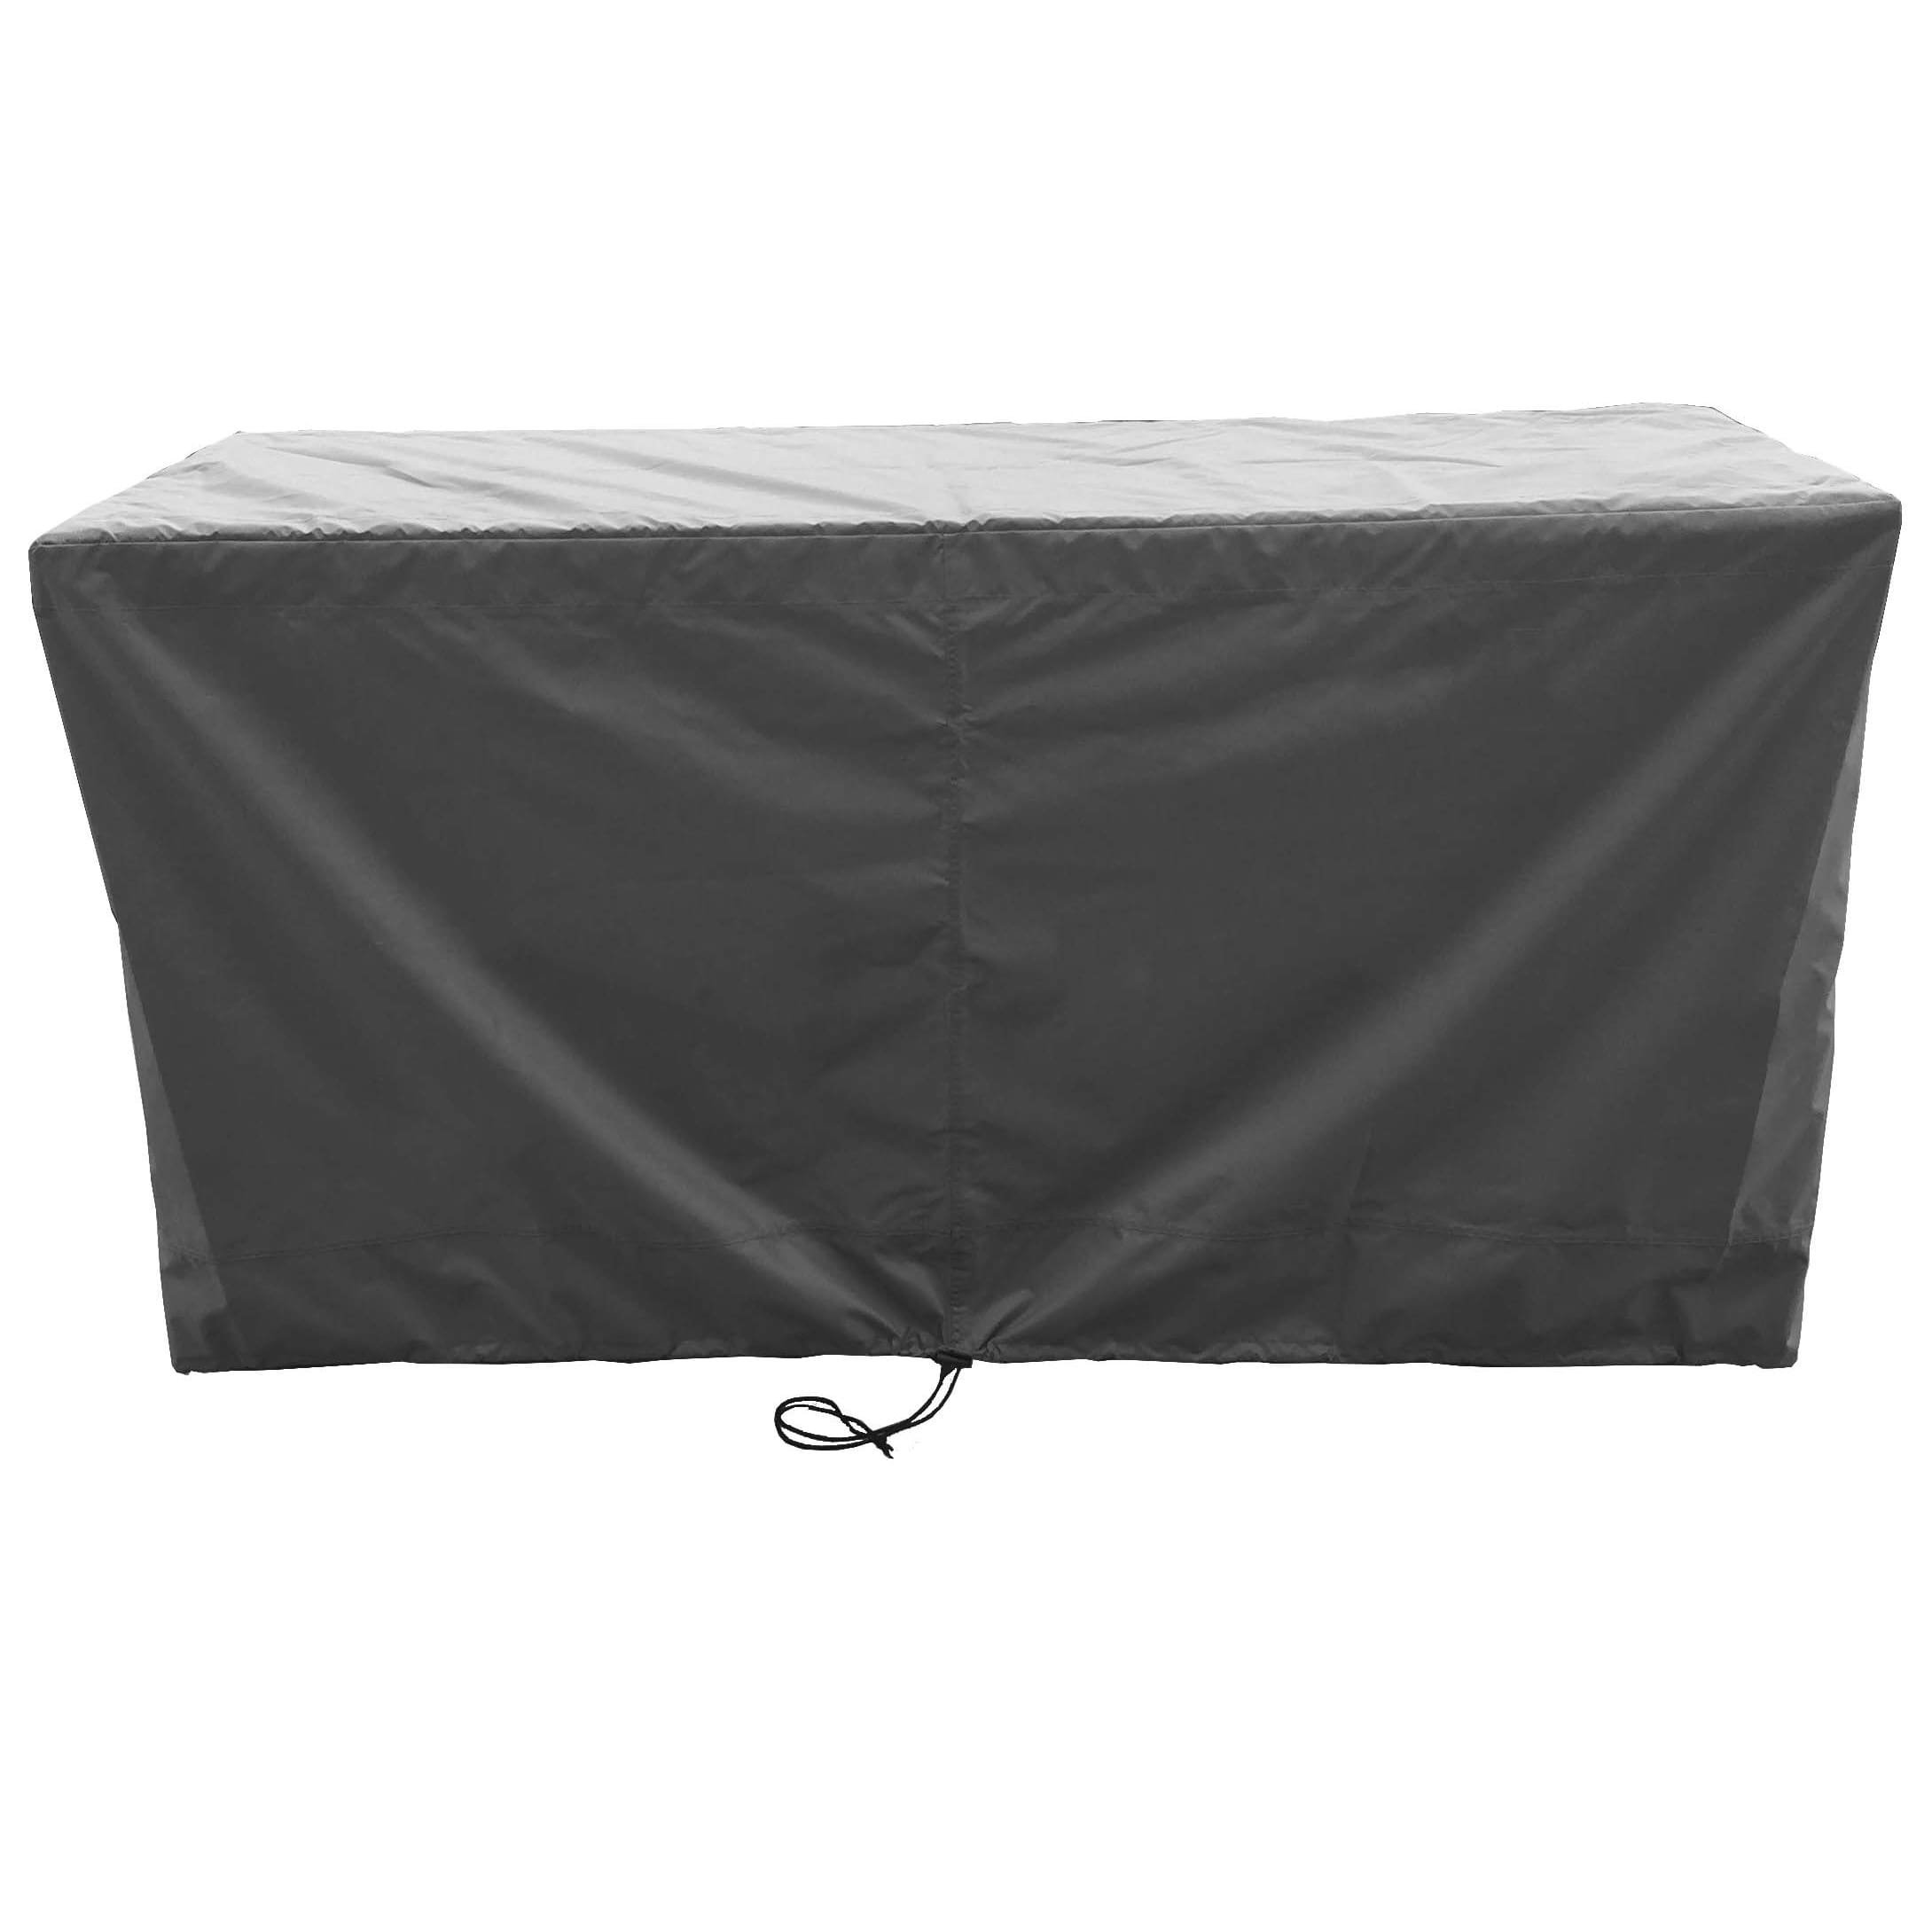 New Age Products 65820 Outdoor Kitchen 32'' Grey Cover Outdoor Kitchen Cover, Gray